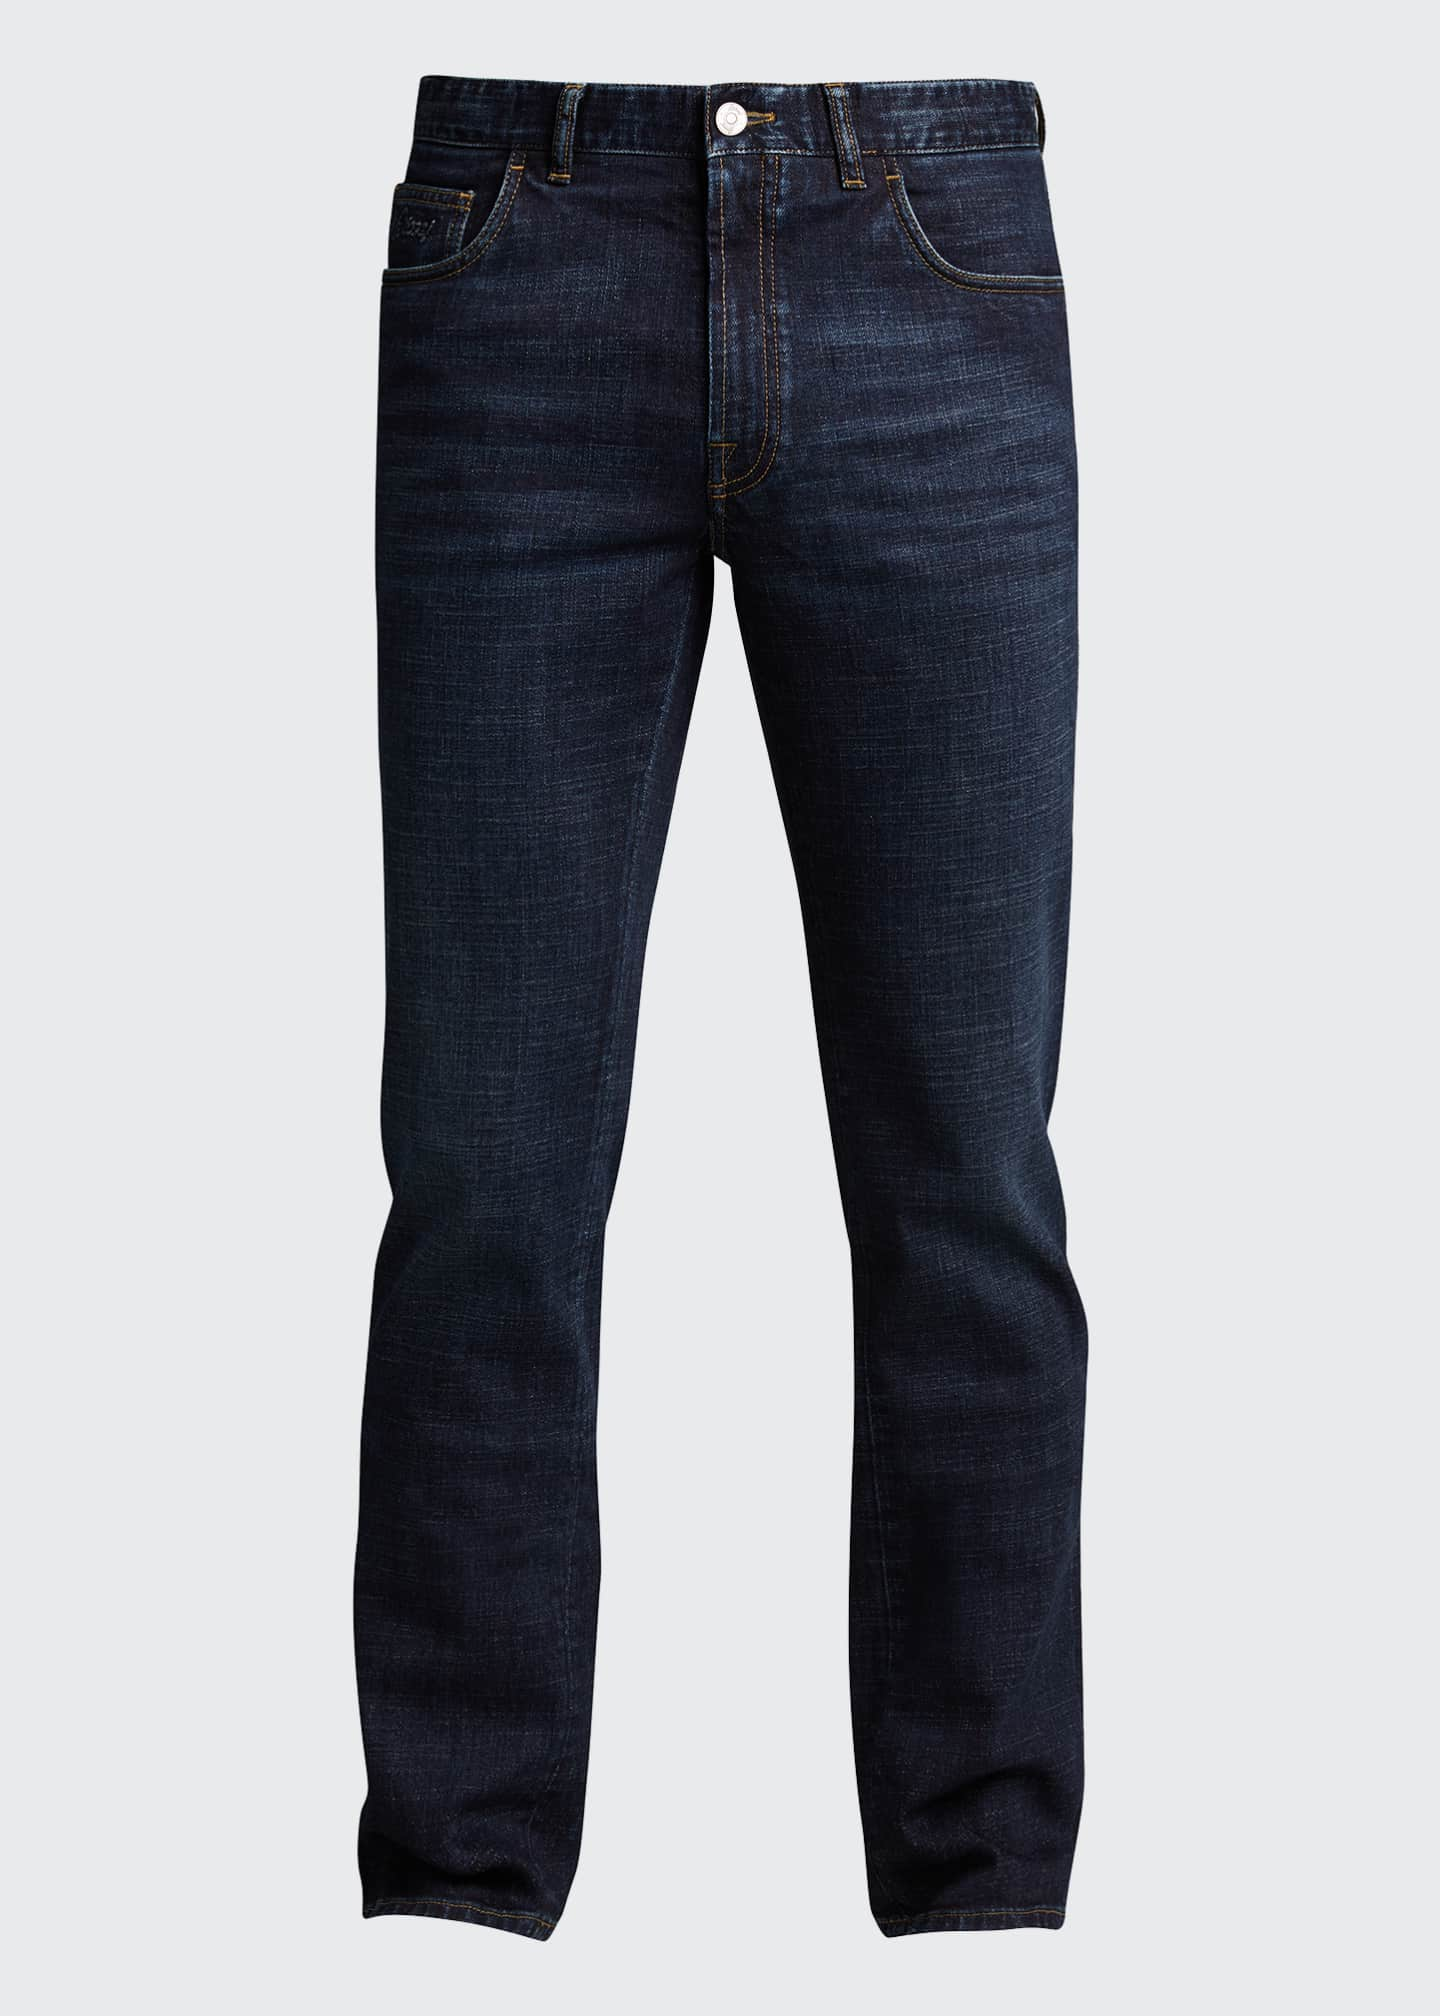 Image 5 of 5: Men's Slim Stretch-Denim Jeans